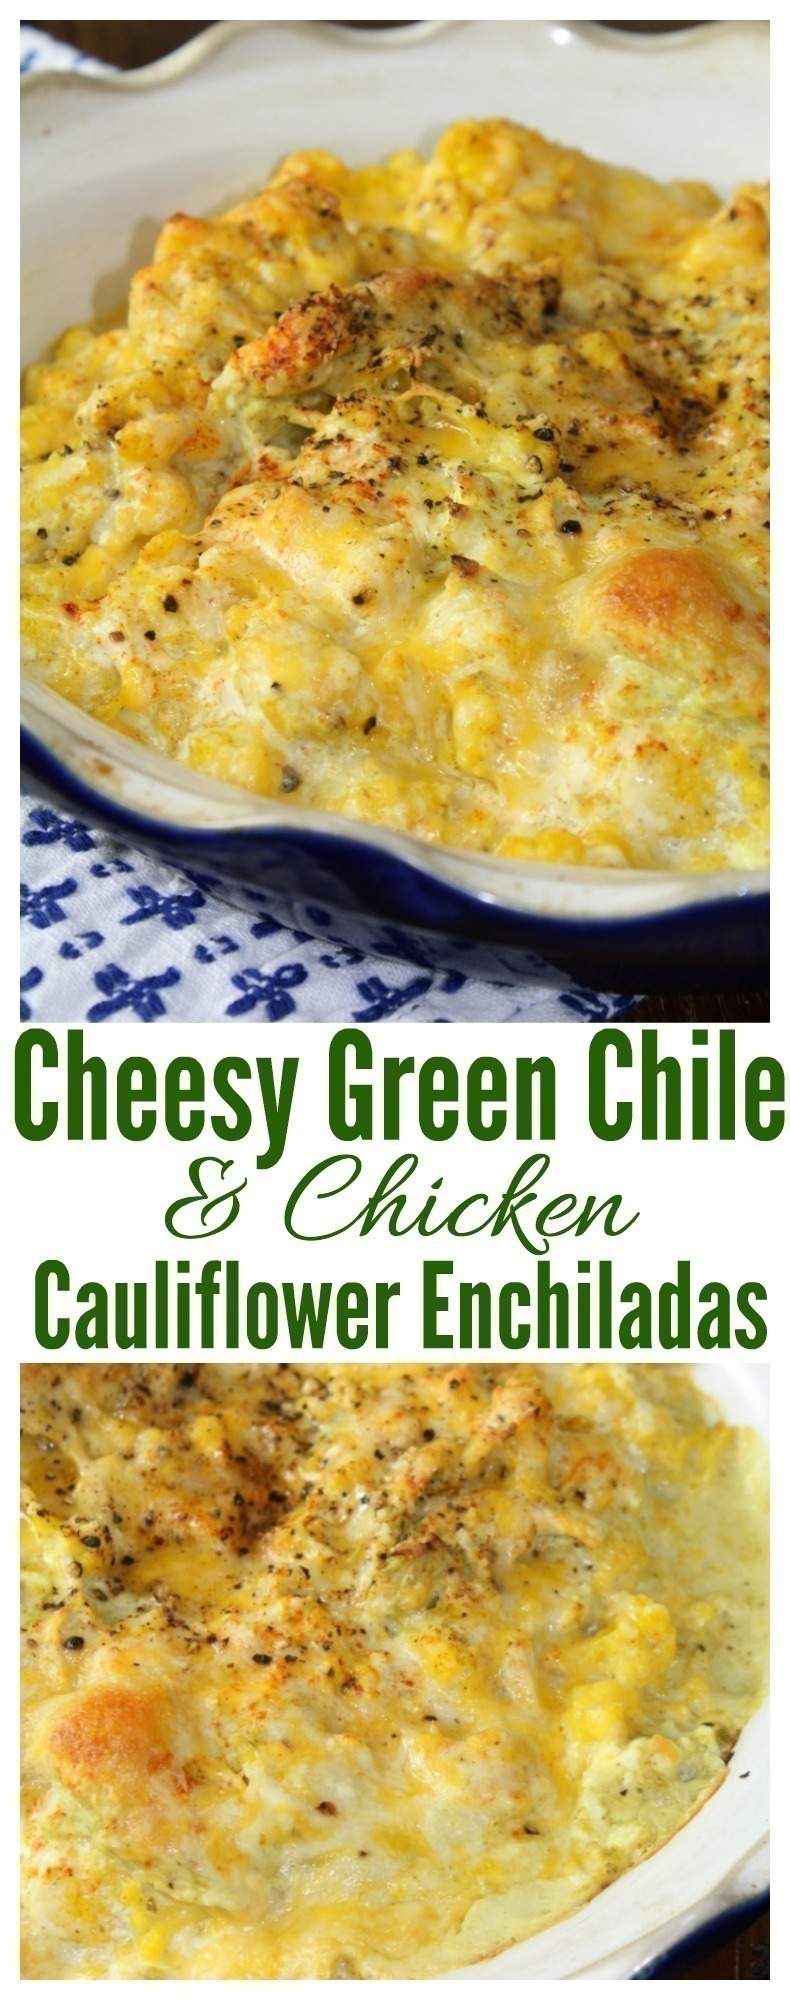 A cheesy, green chile and chicken cauliflower casserole that is low-carb and full of flavor.